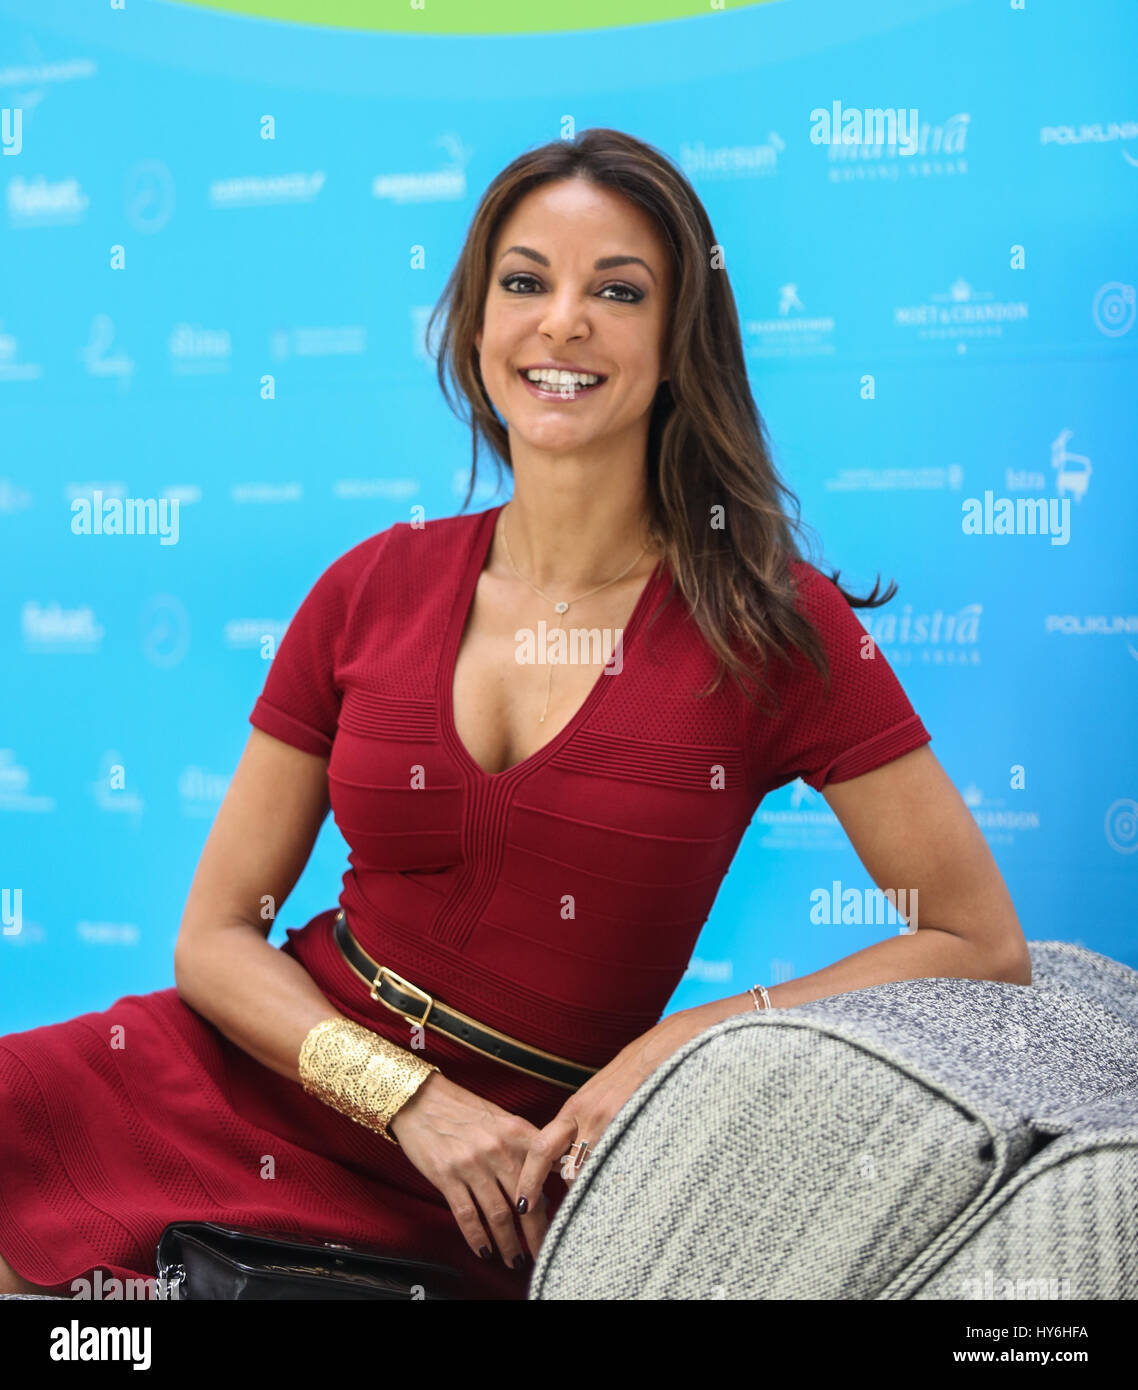 schauspielerin und model eva larue posiert f r fotos vor. Black Bedroom Furniture Sets. Home Design Ideas